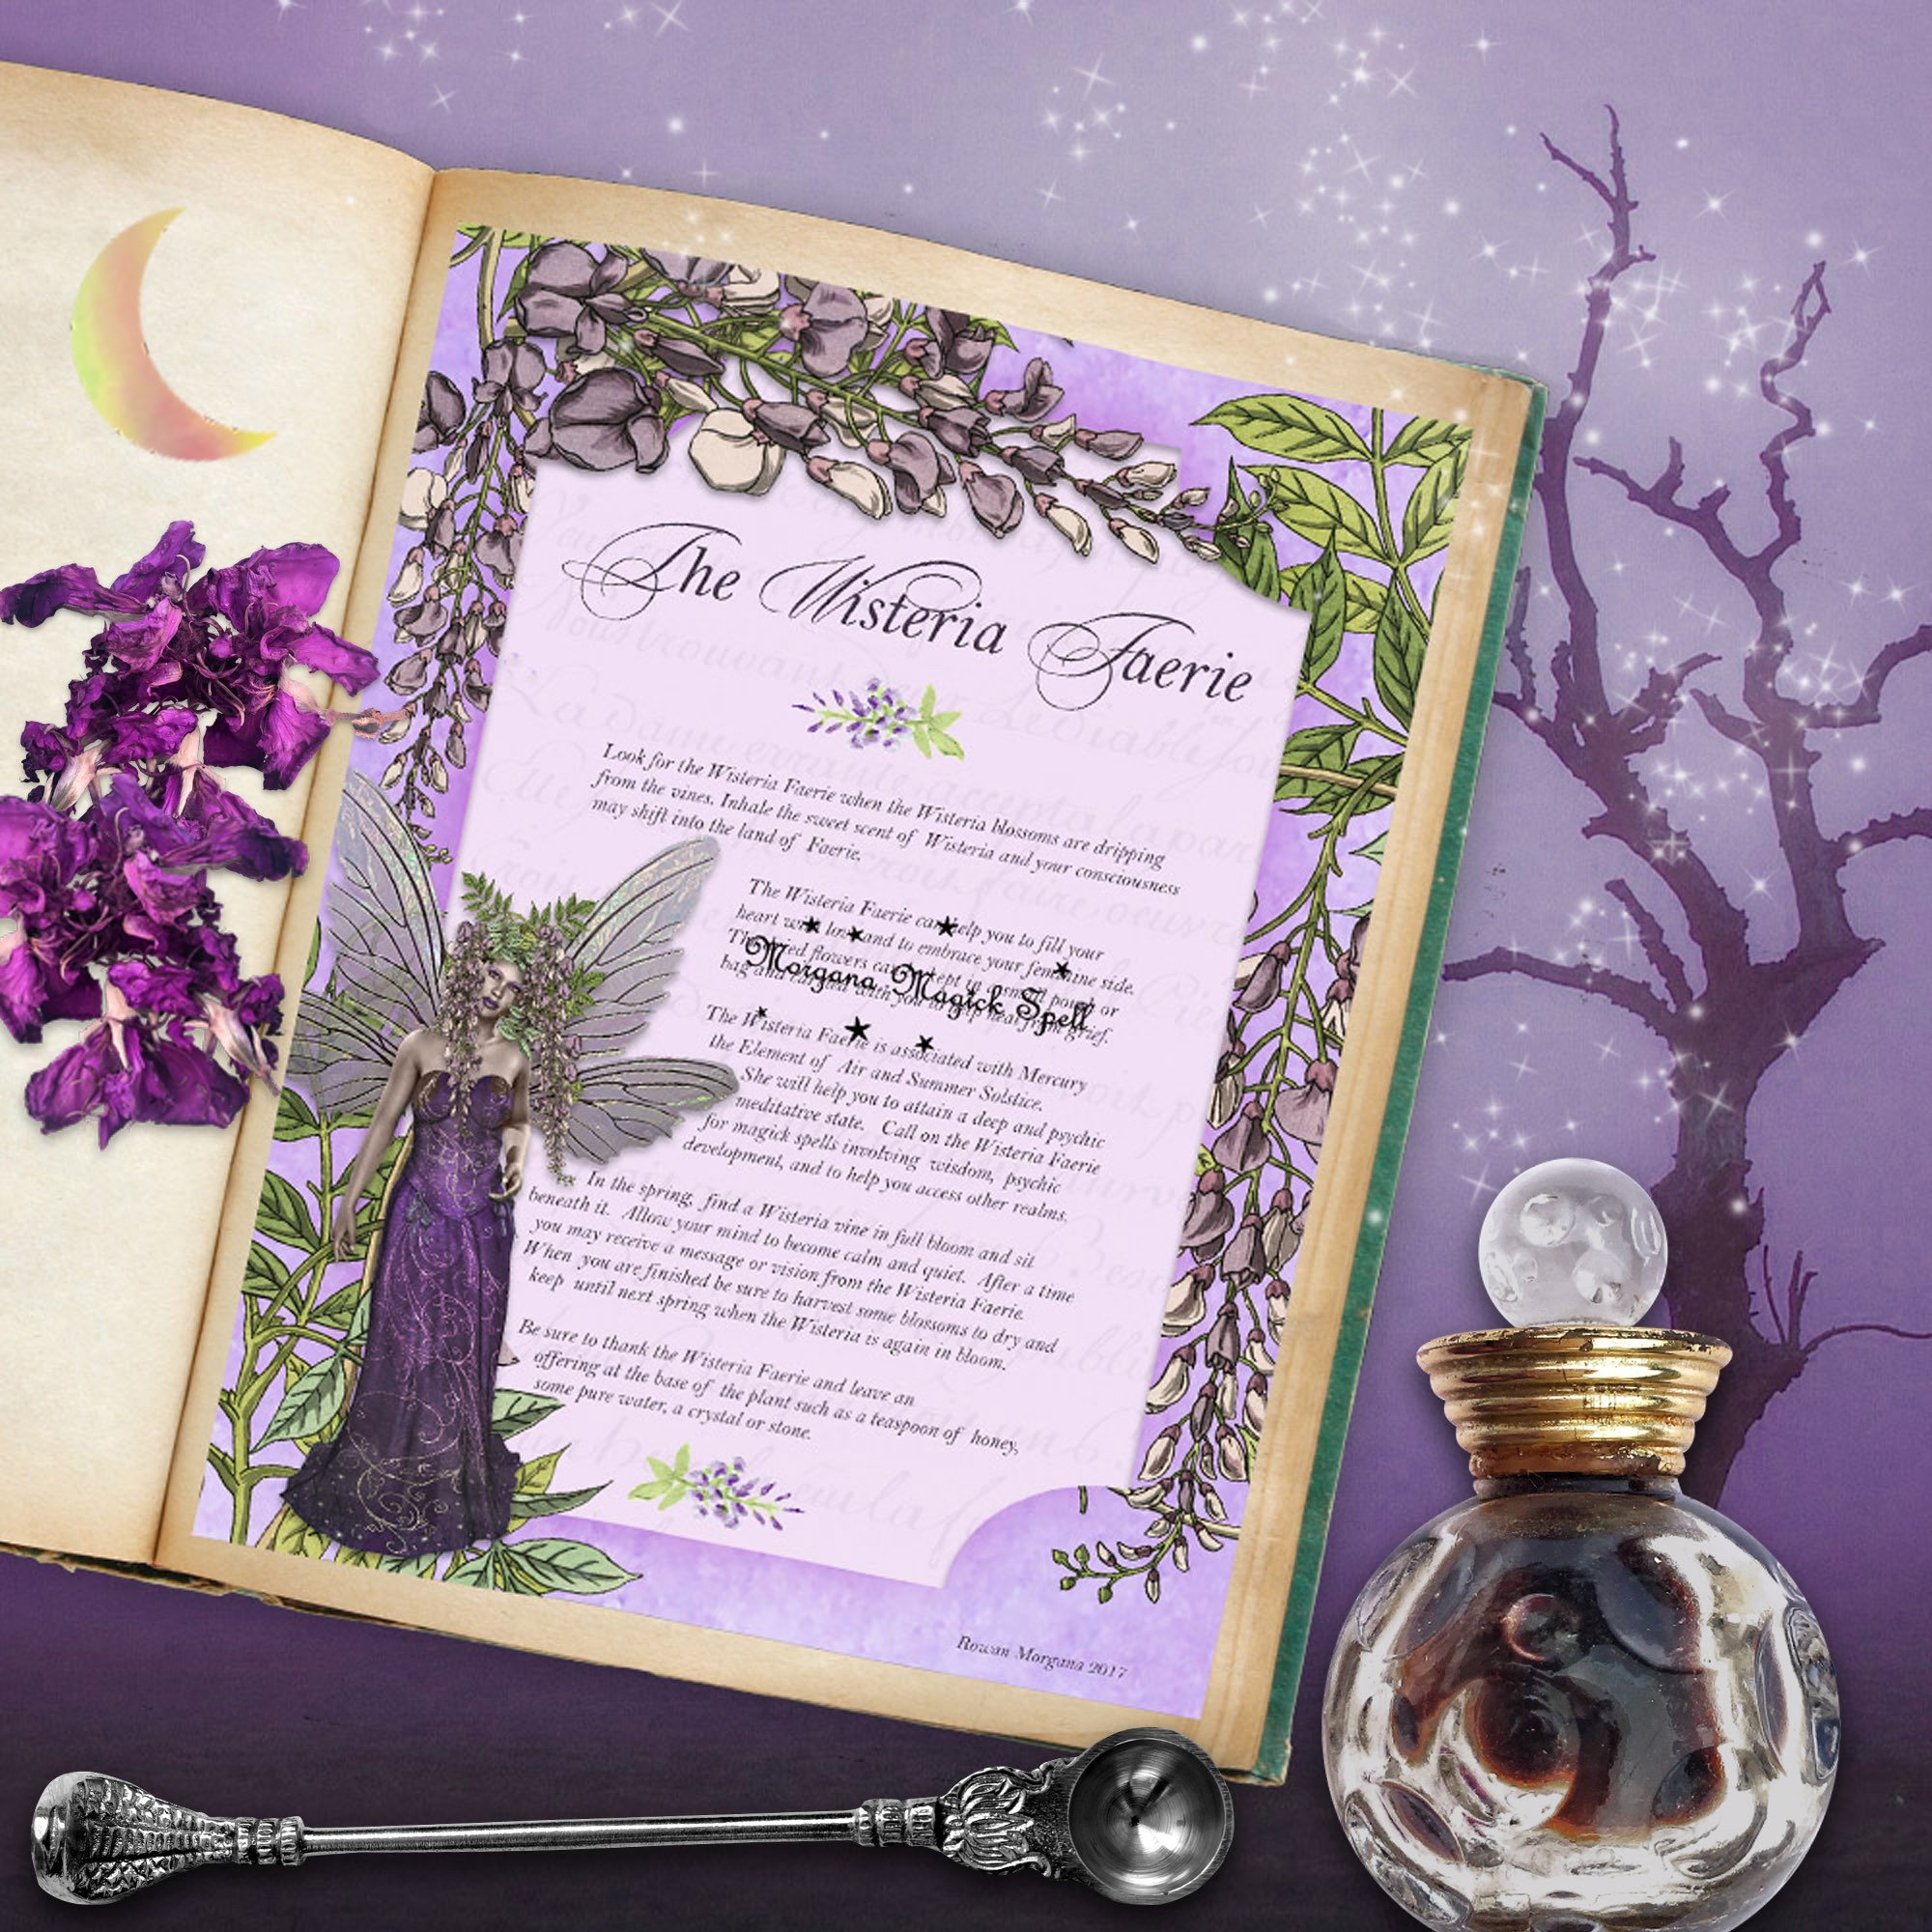 The WISTERIA FAERIE Realm of the Fey Lore